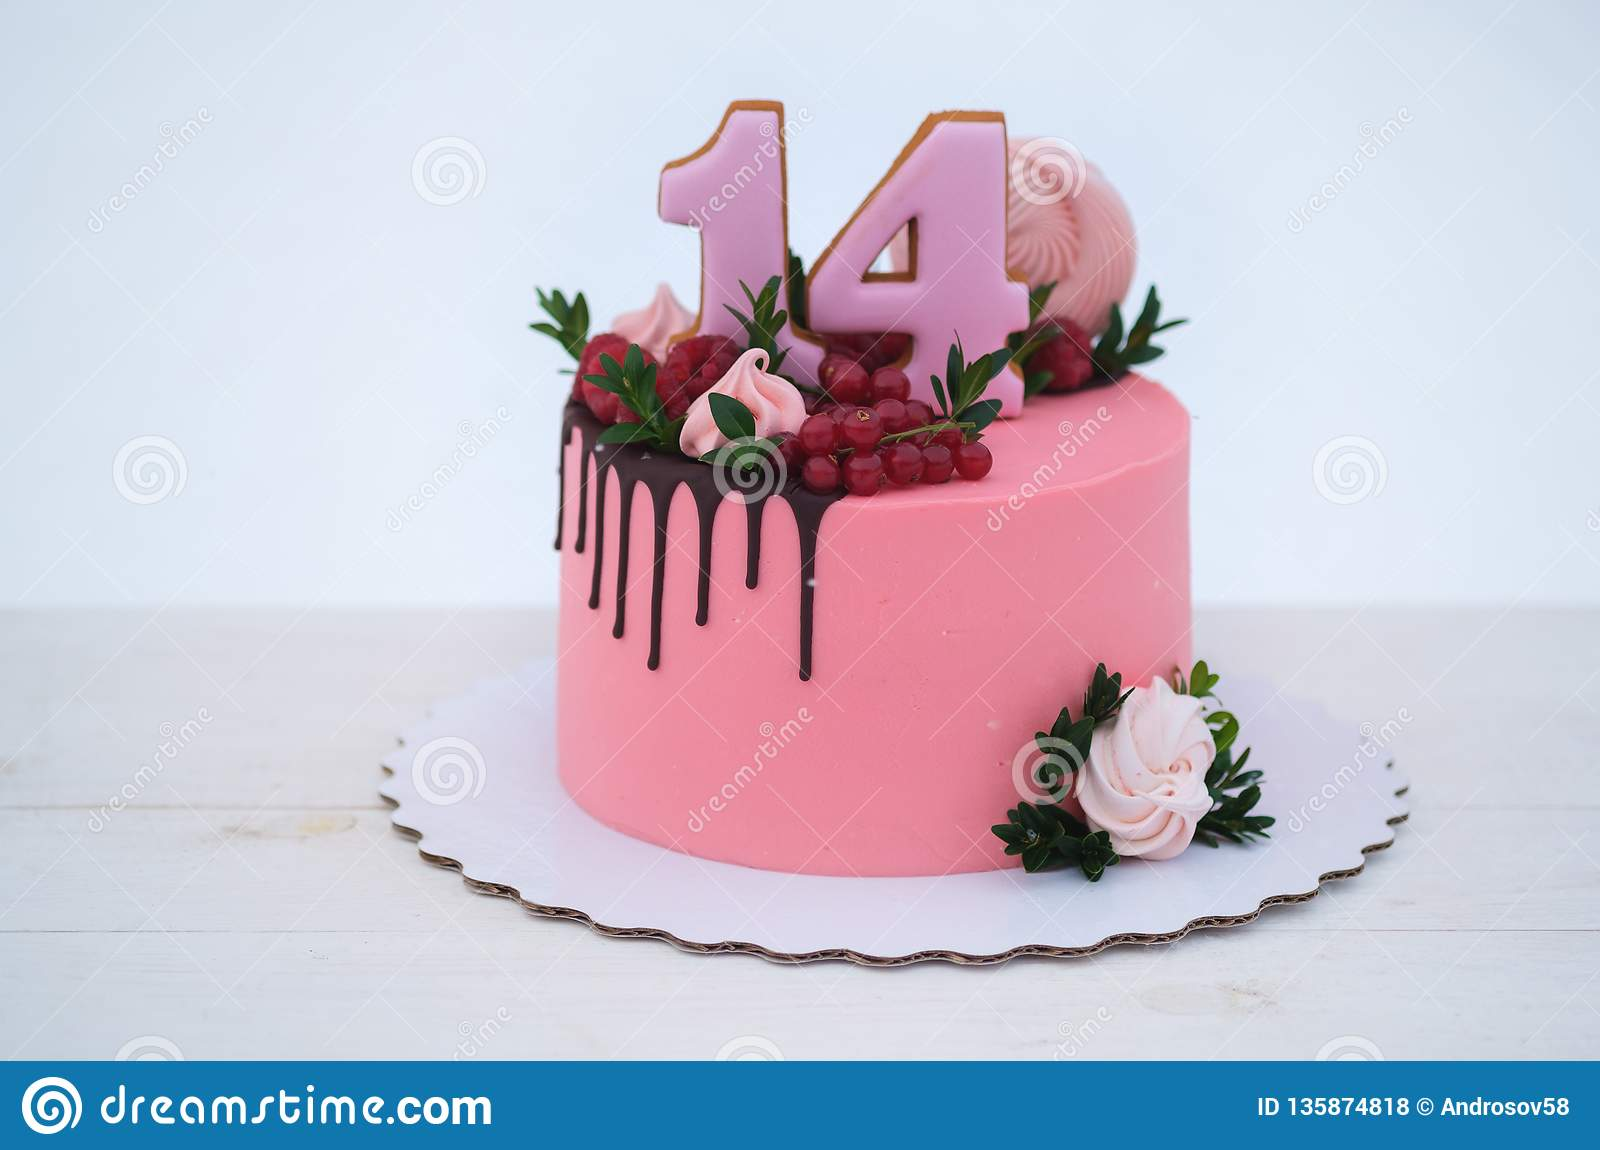 Beautiful Birthday Cake Girl With The Number Fourteen On A White Background